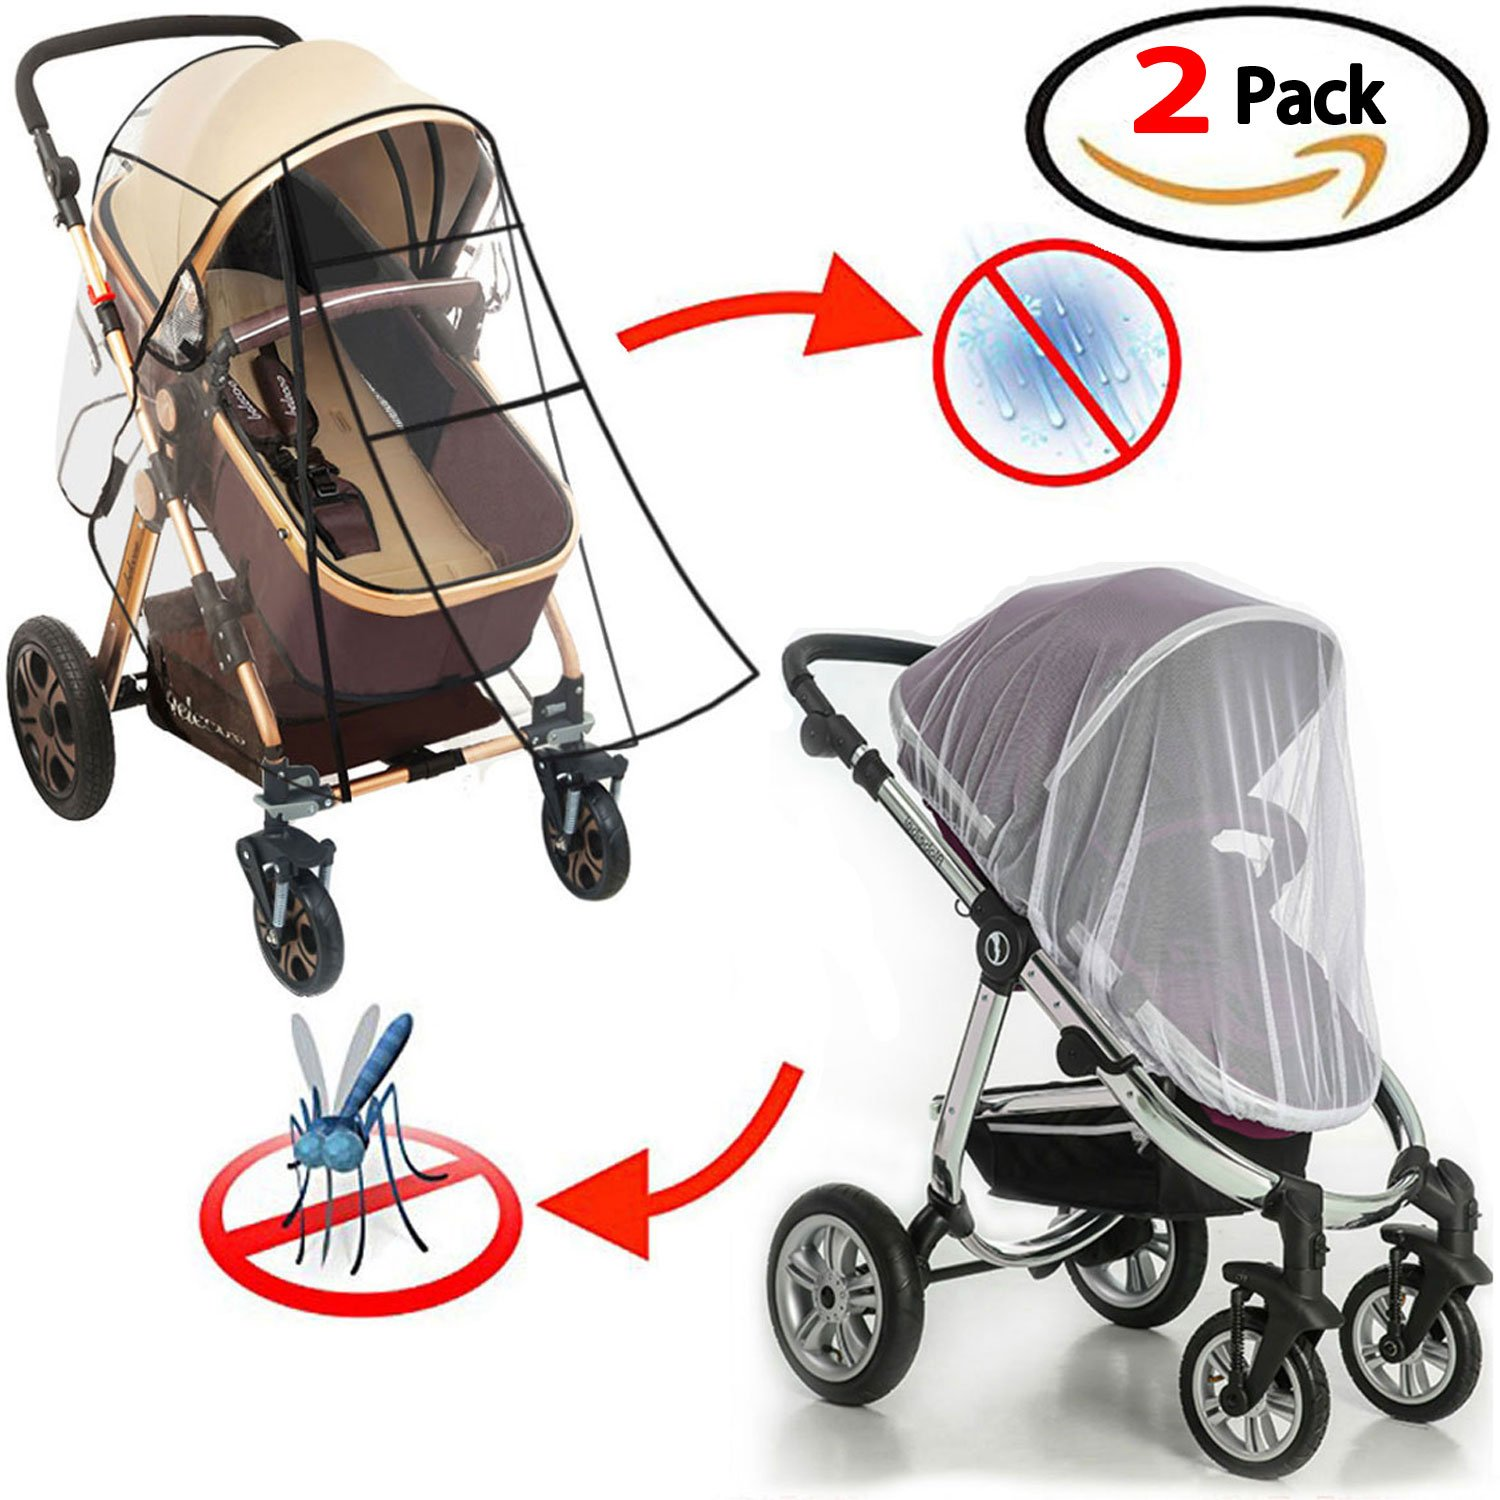 Universal Stroller Rain Cover - Baby Mosquito Net (2-Pieces Set) Waterproof, Windproof Protection Stroller Weather Shield Food Grade Plastics Rain Cover Originalidad